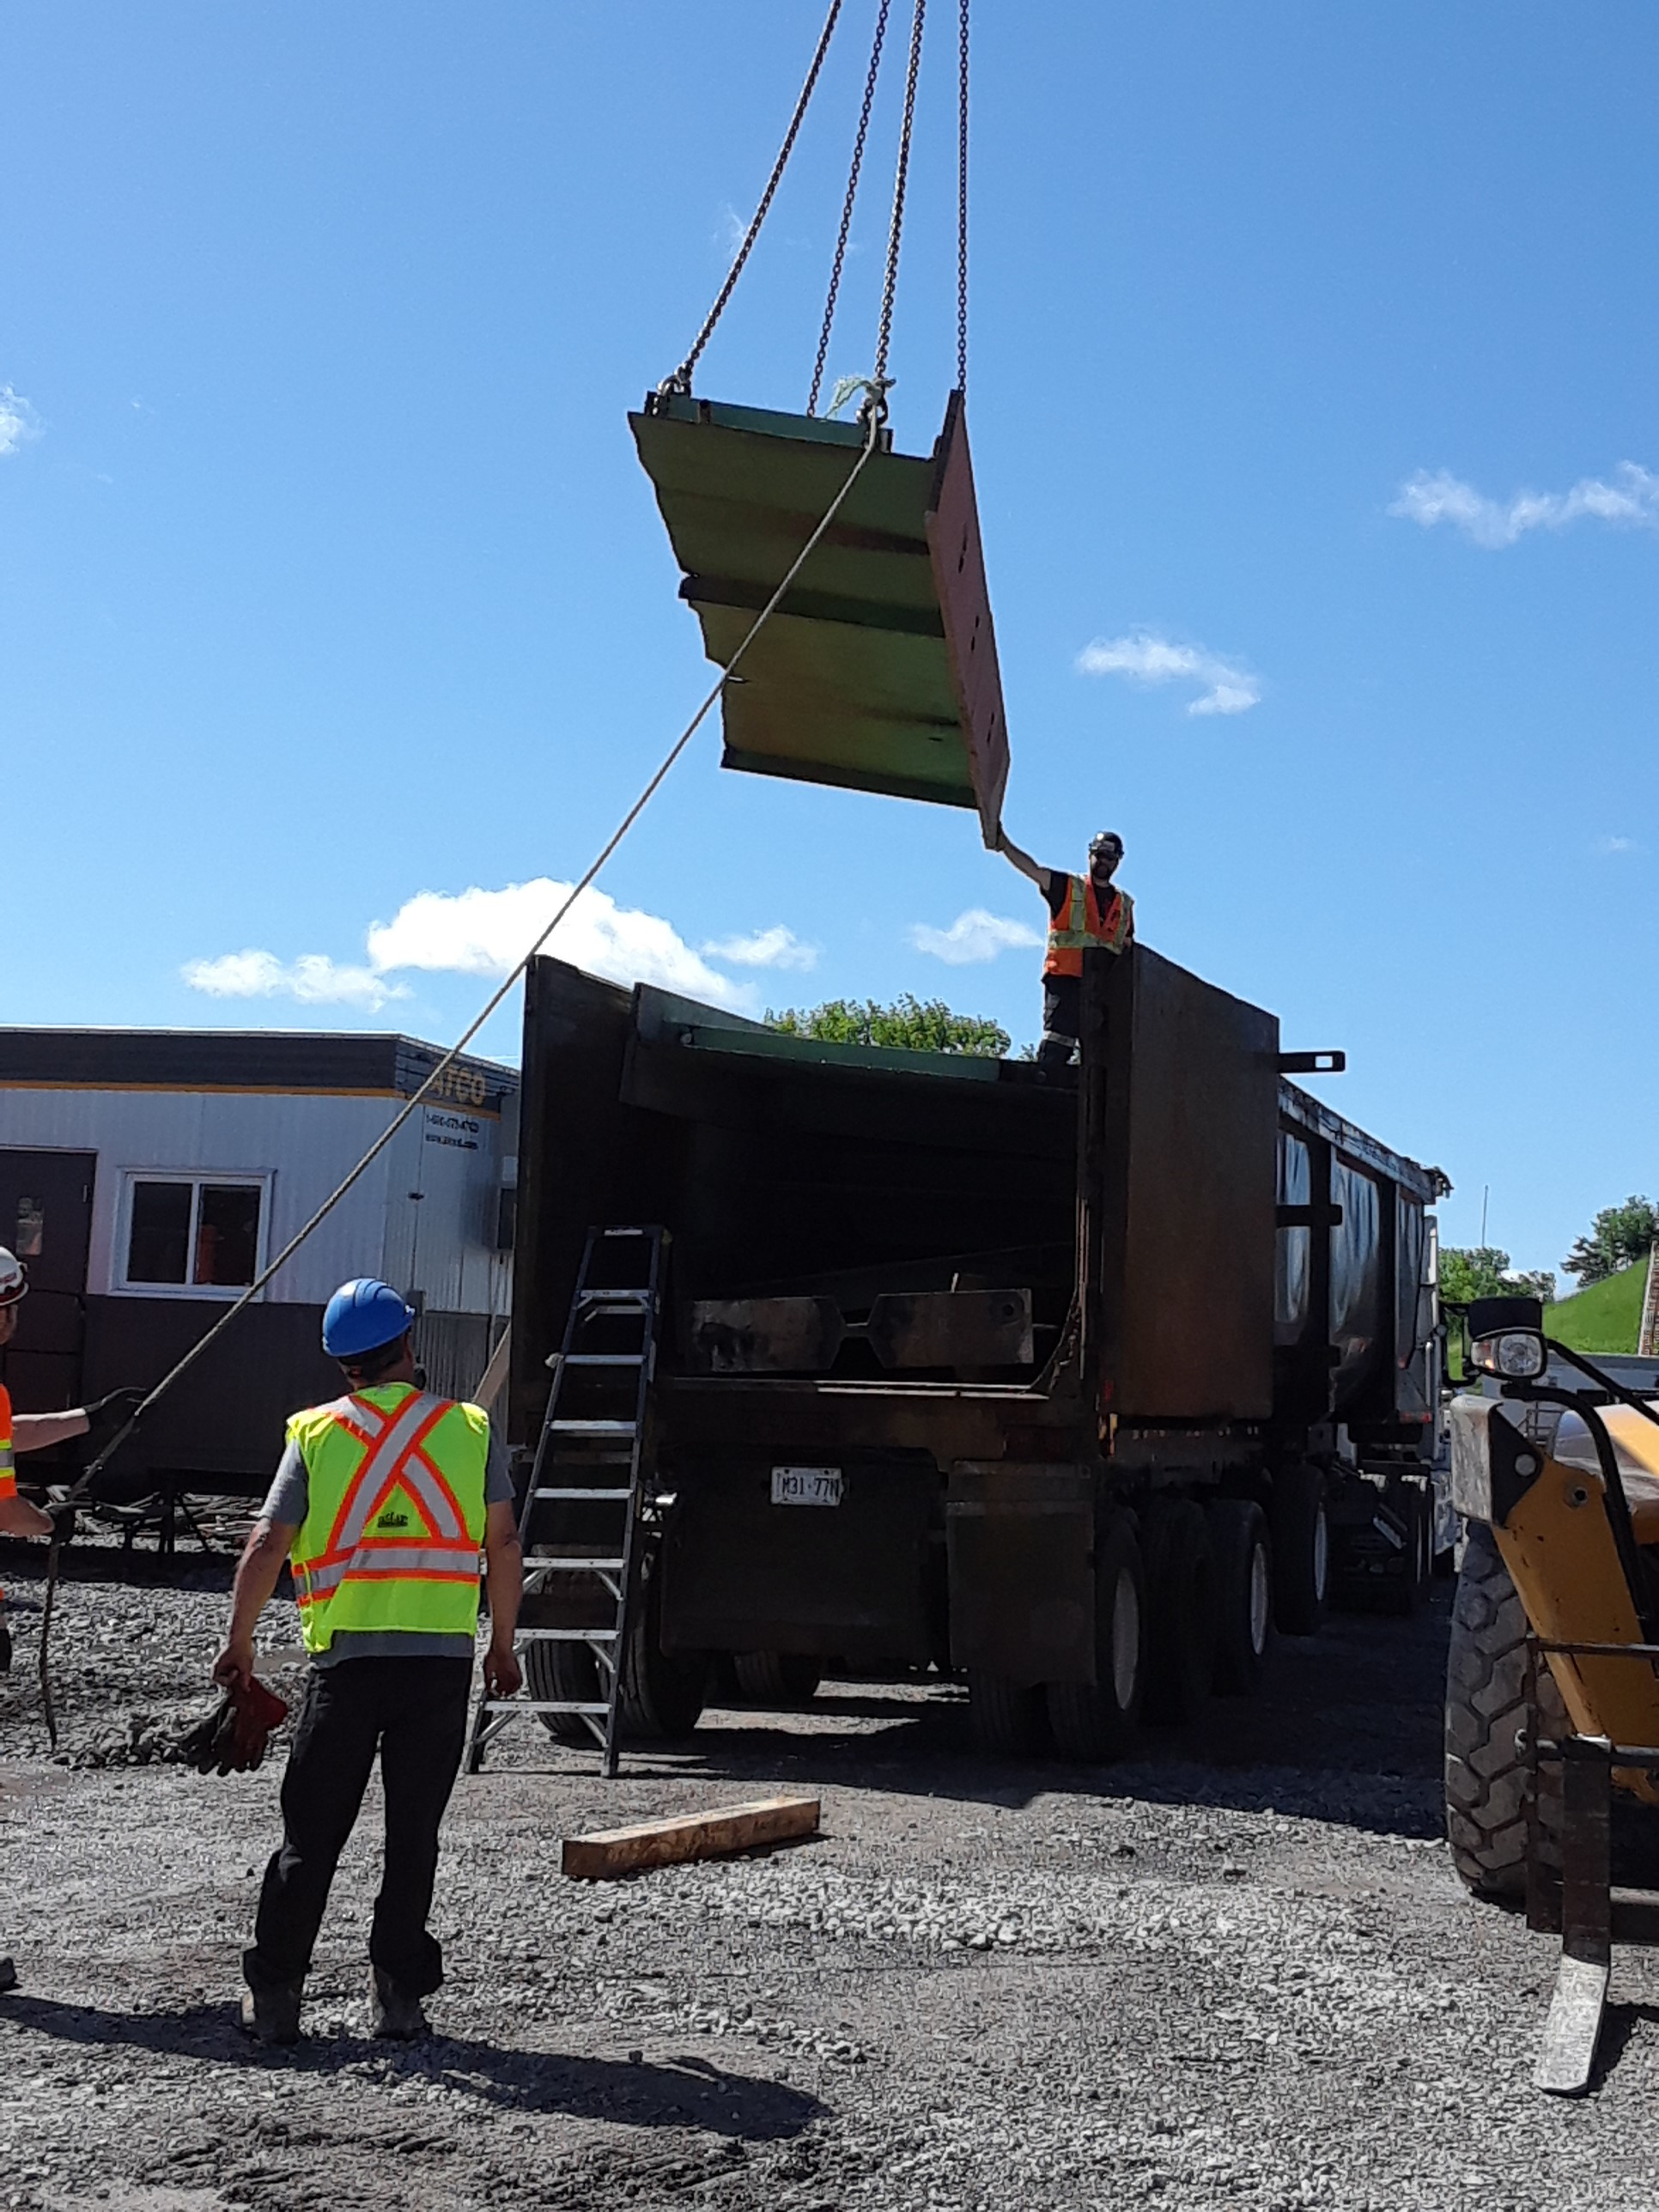 Removal of dismantled girders from project site